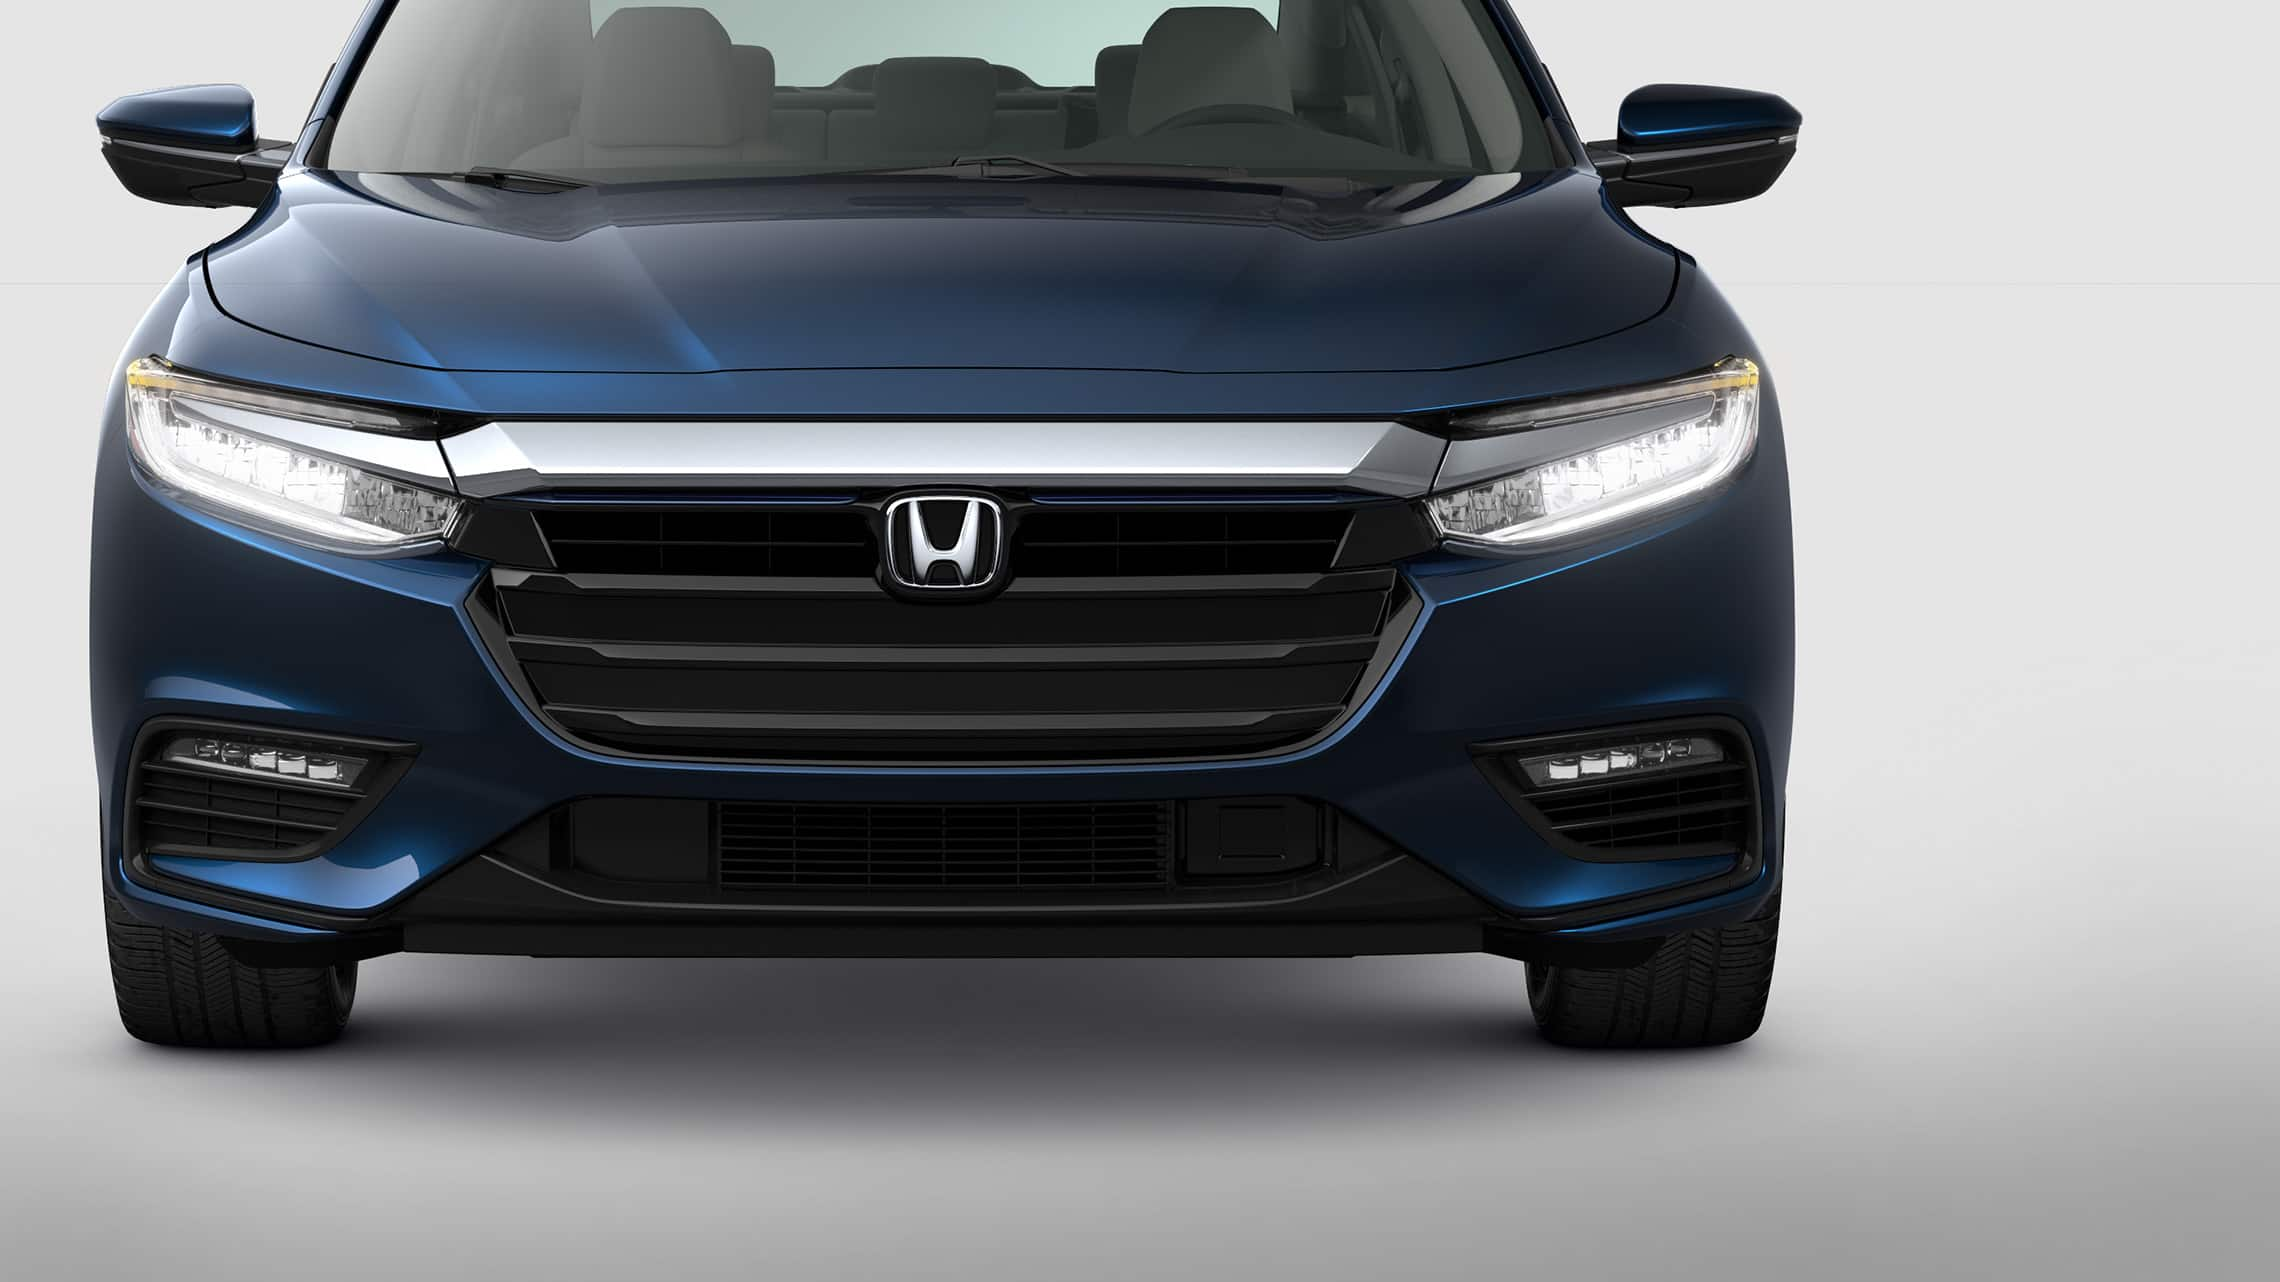 Vista frontal del Honda Insight 2021 en Cosmic Blue Metallic.